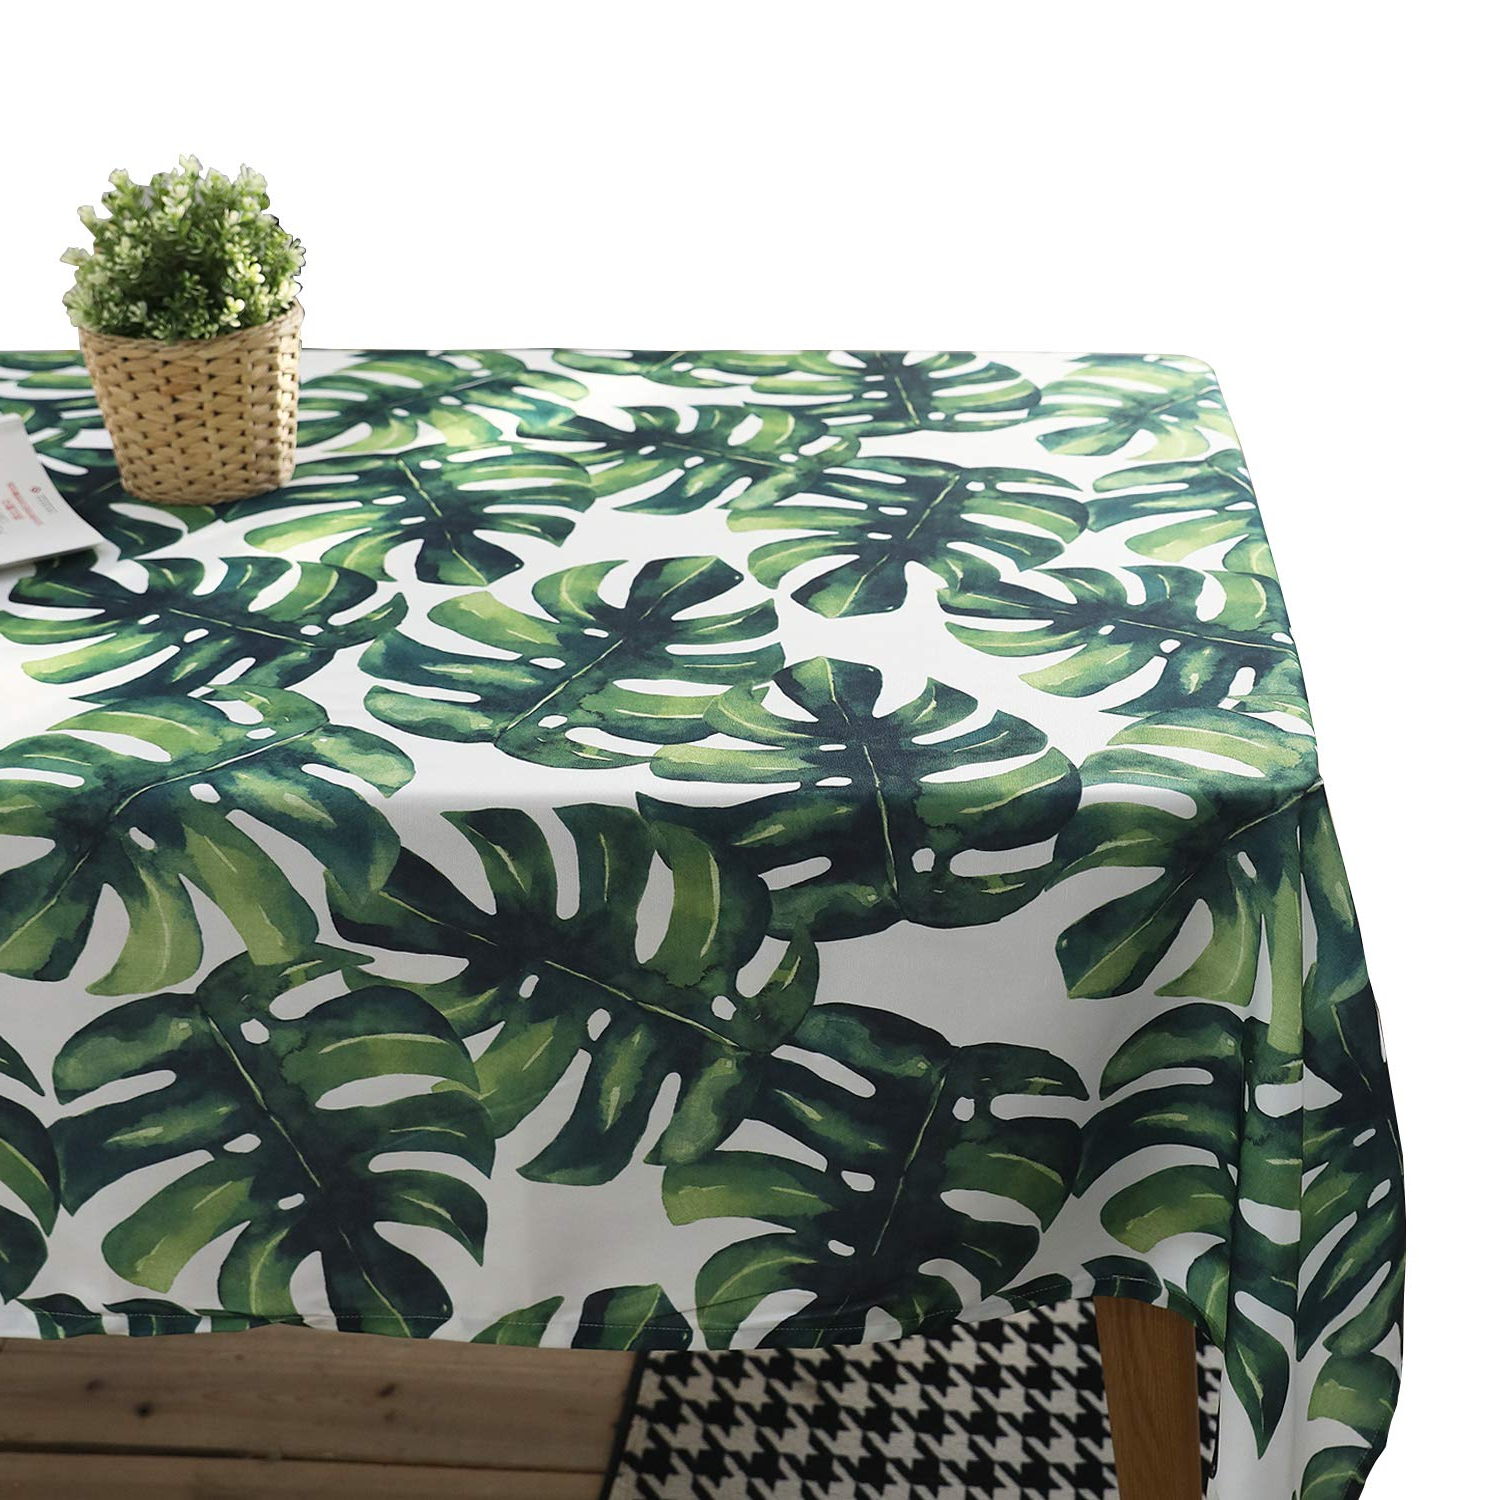 Tablecloth,jzy Waterproof Cotton Table Cover 55 X 55 Inches For Kitchen Dining Table Palm Leaf Table Linen For Square Or Round Table With Favorite Morris Round Dining Tables (View 22 of 30)